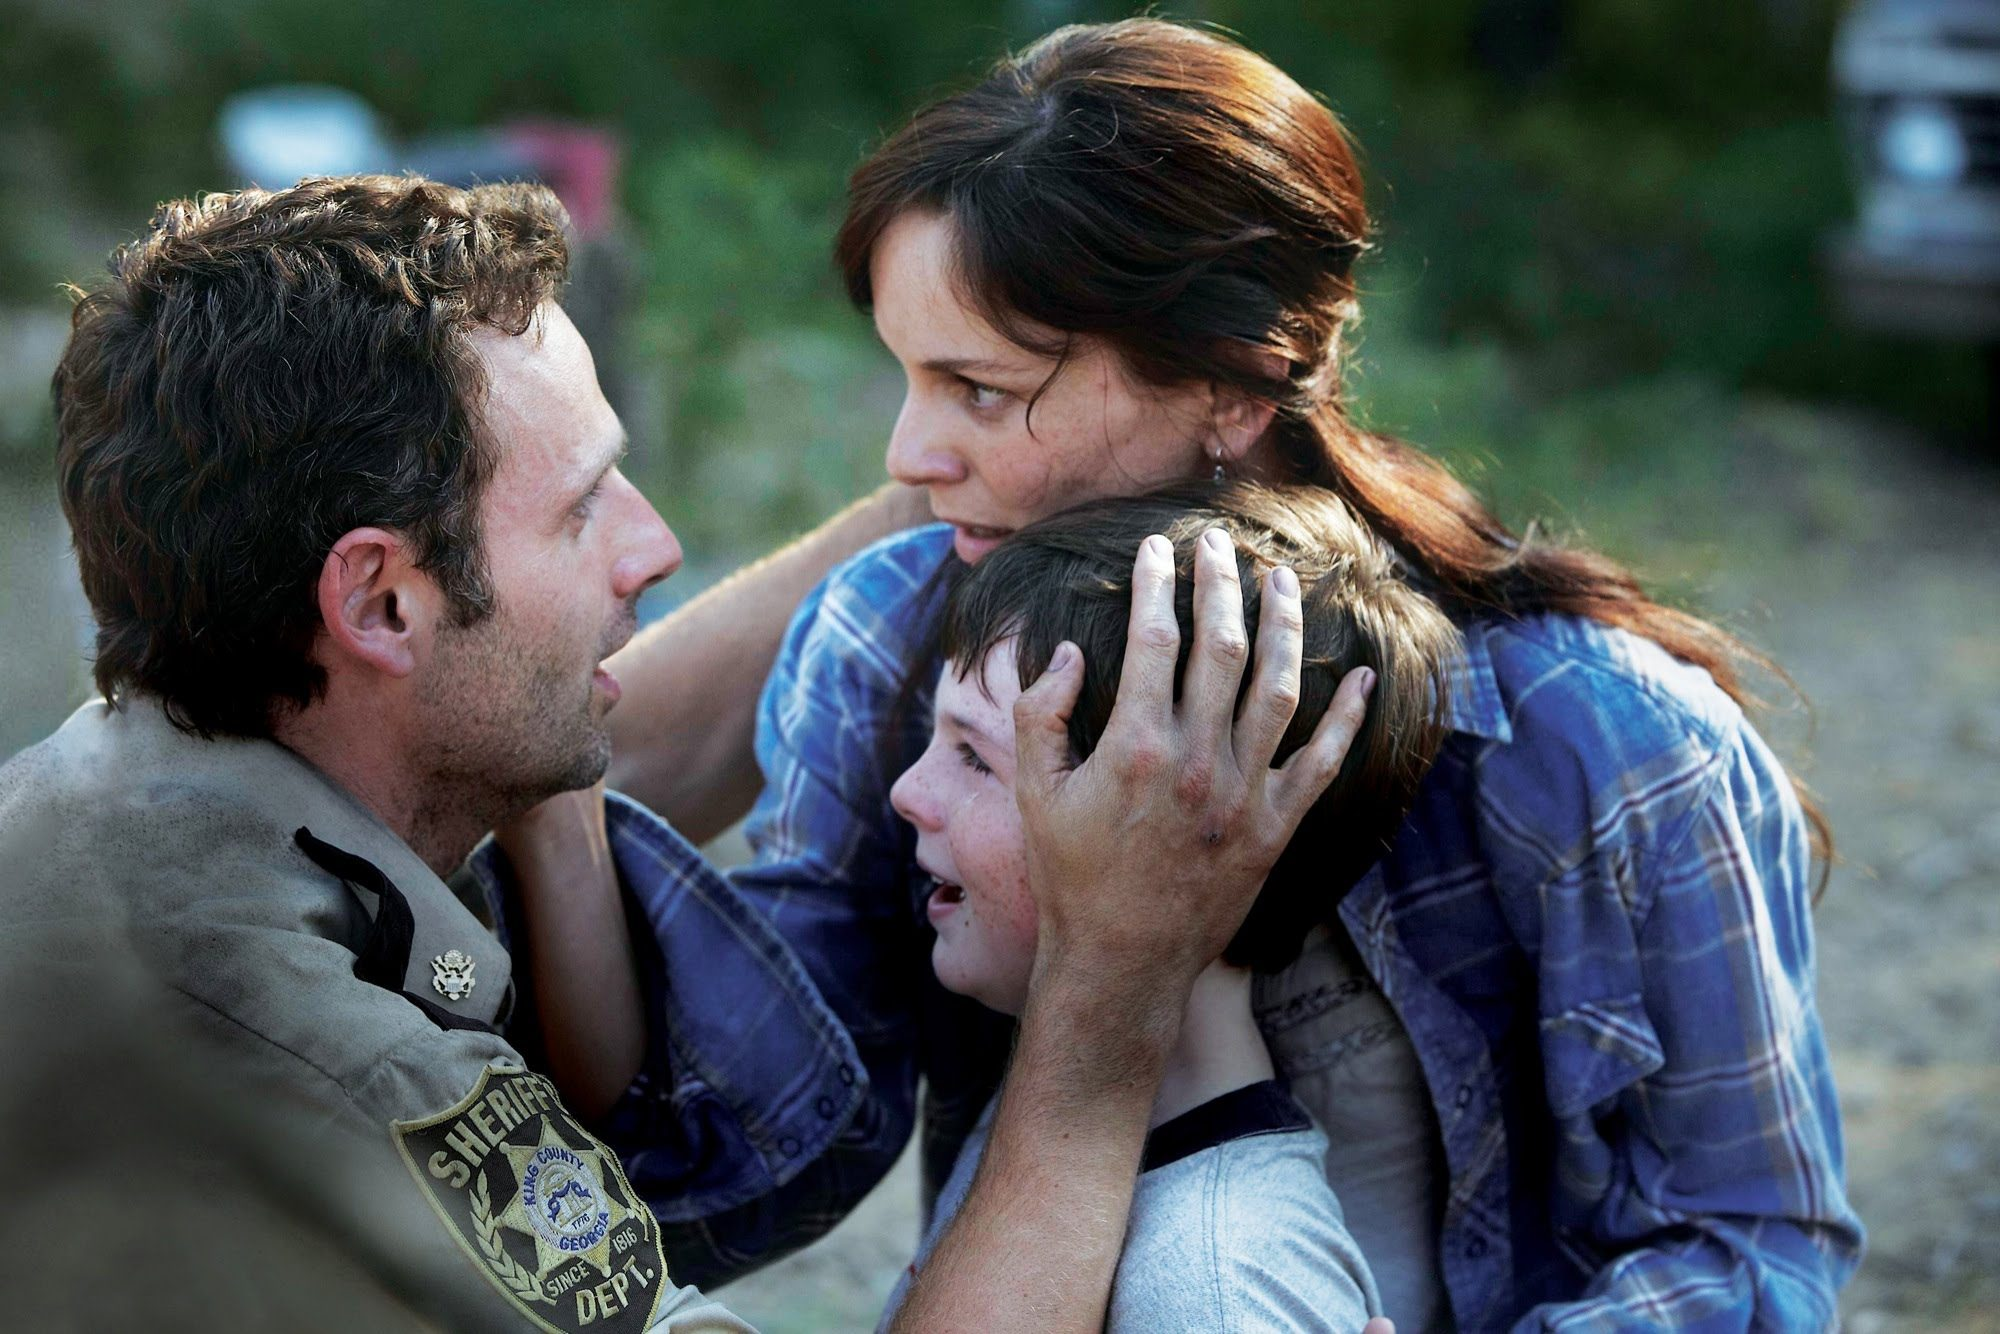 Carl is crying and Lori is shocking looking at Rick.